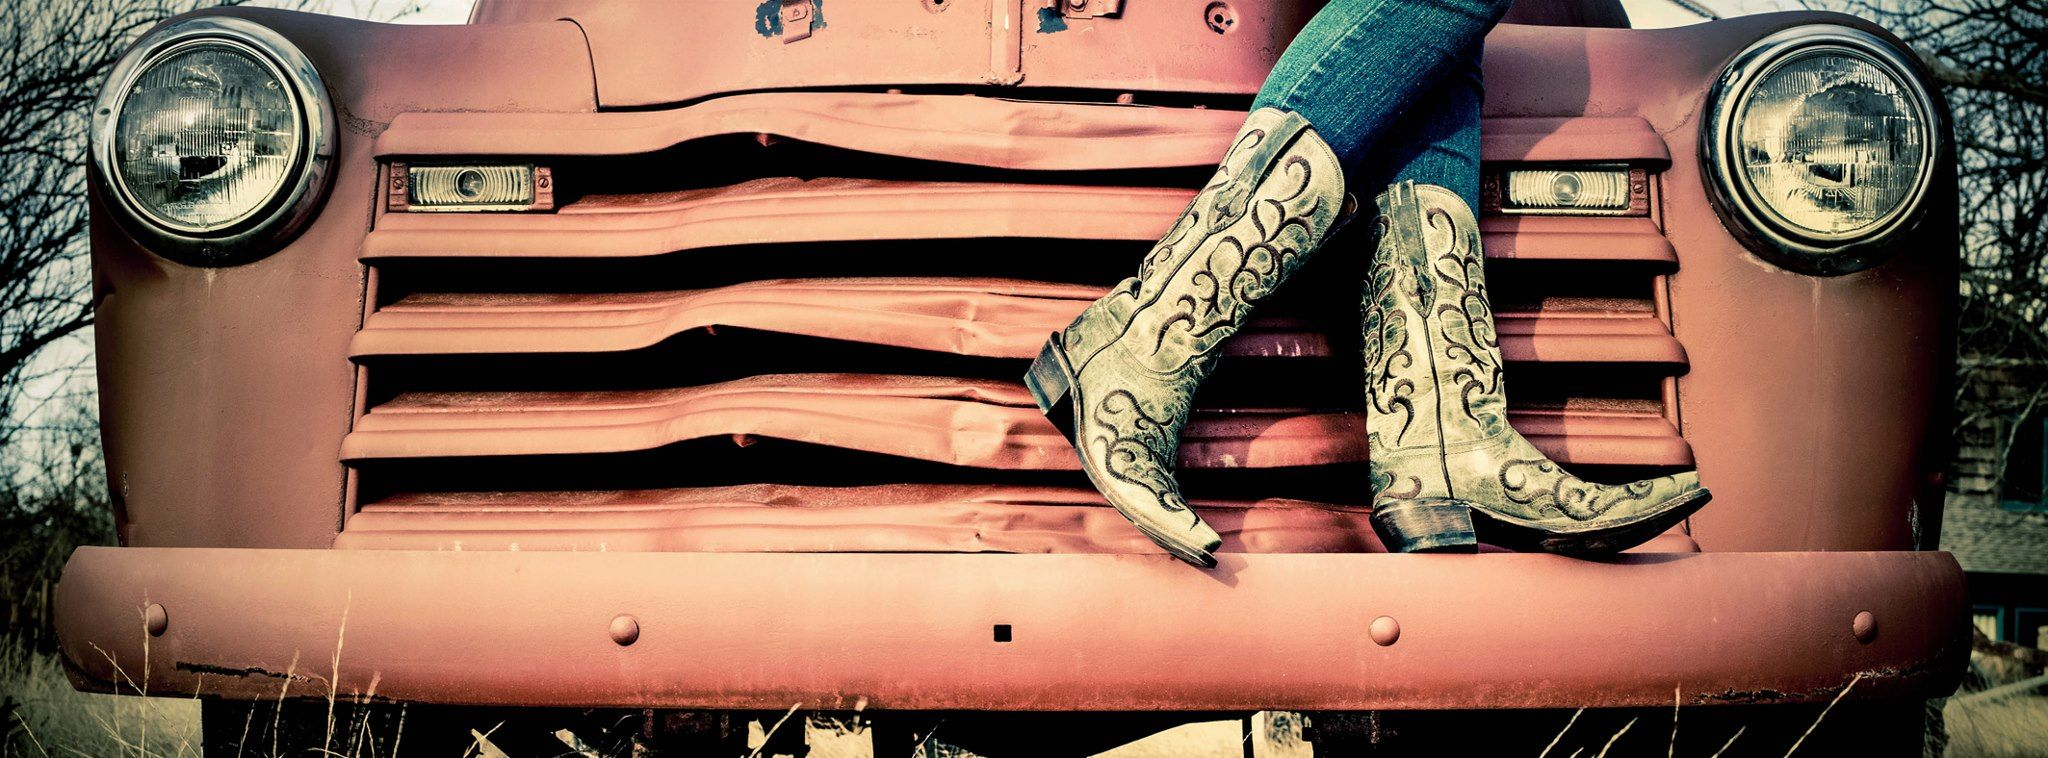 dress - Boots cowgirl on a truck photography video